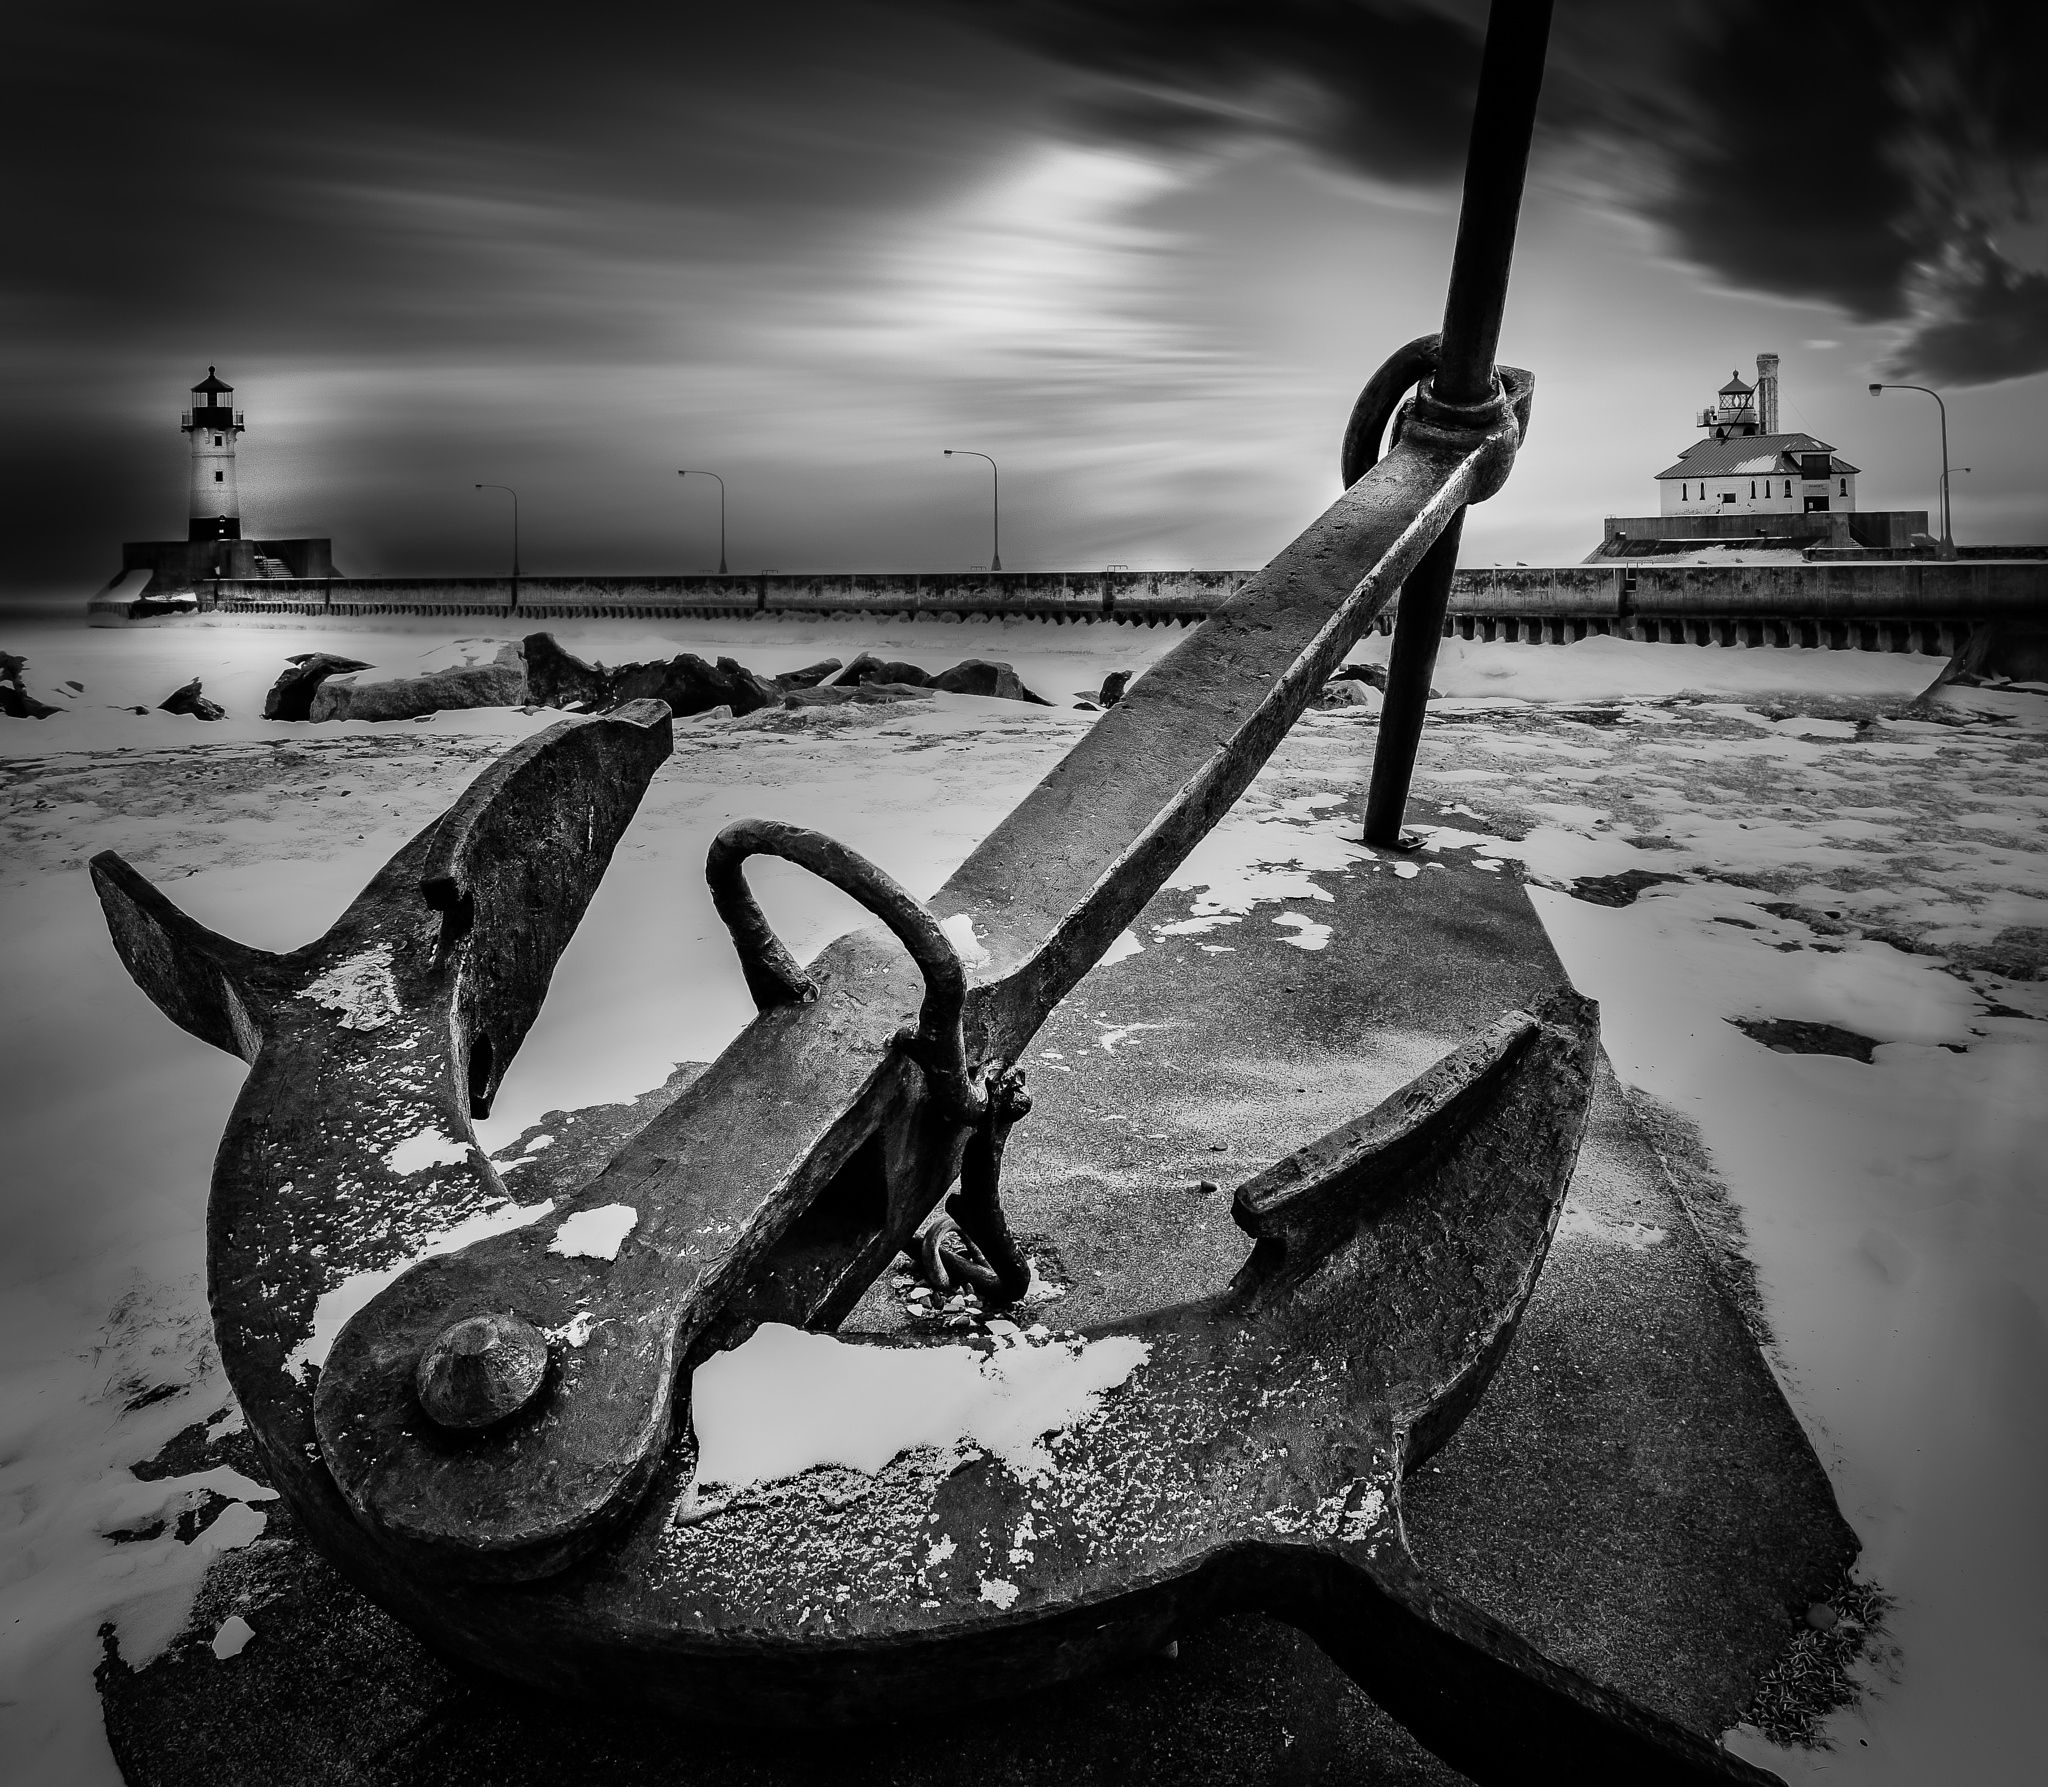 The Anchor Point Anchor Pictures Black And White Photographs Black And White Photography